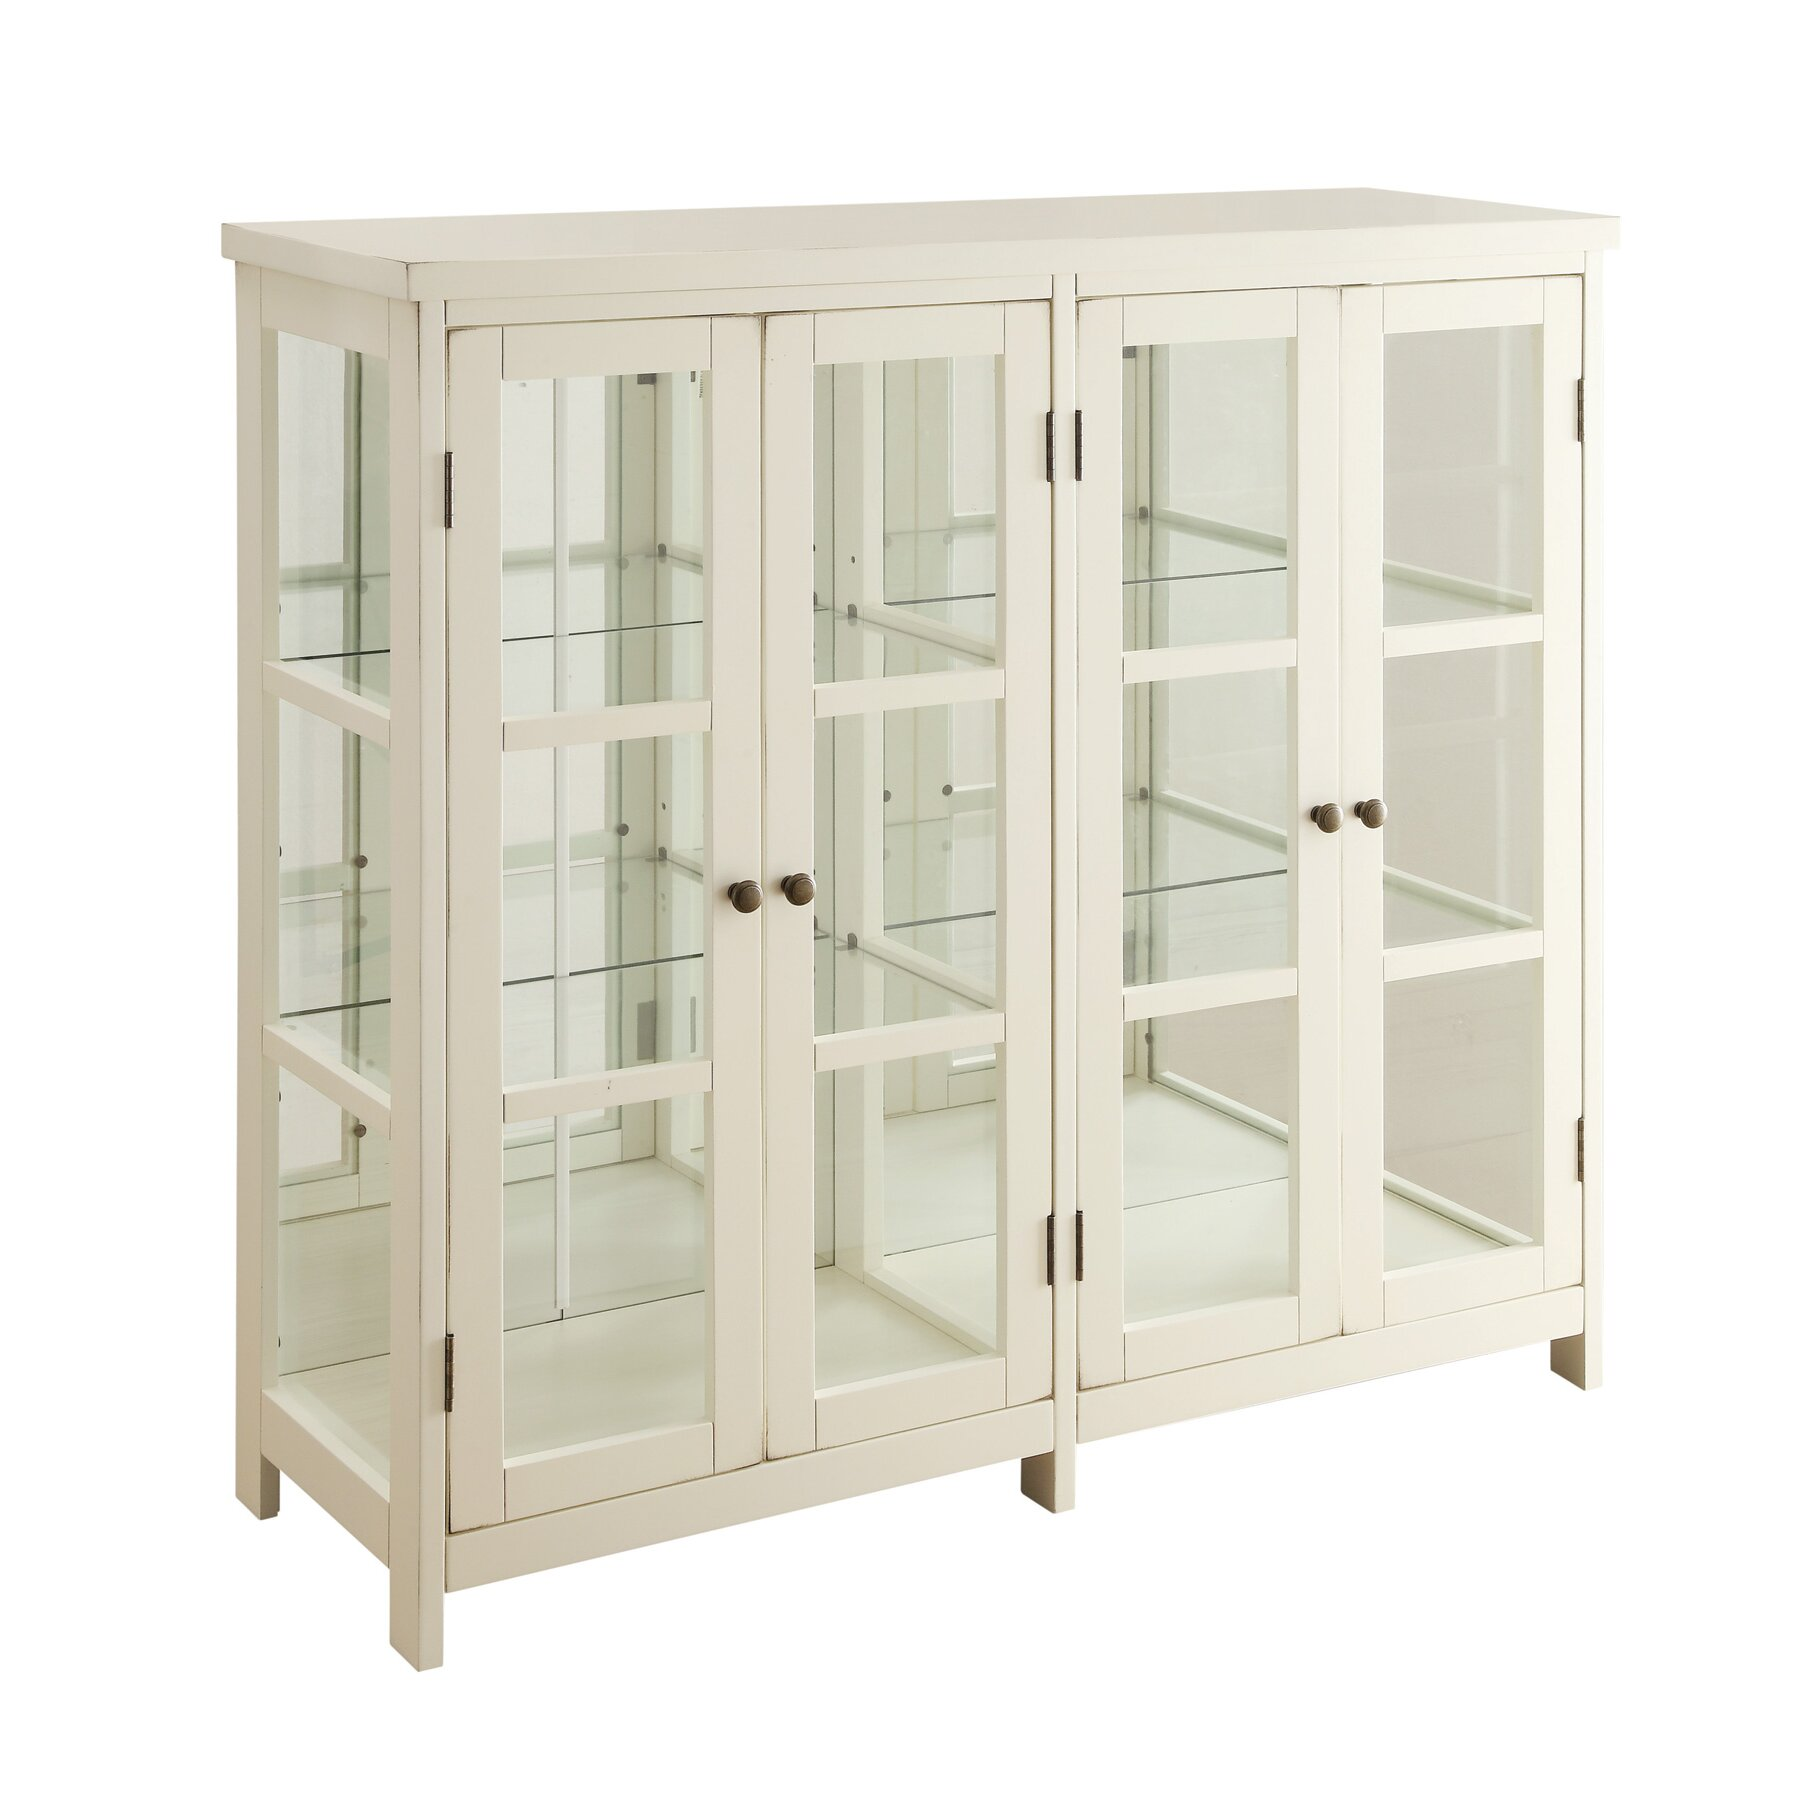 Accent cabinet with glass doors - 4 Door Accent Cabinet